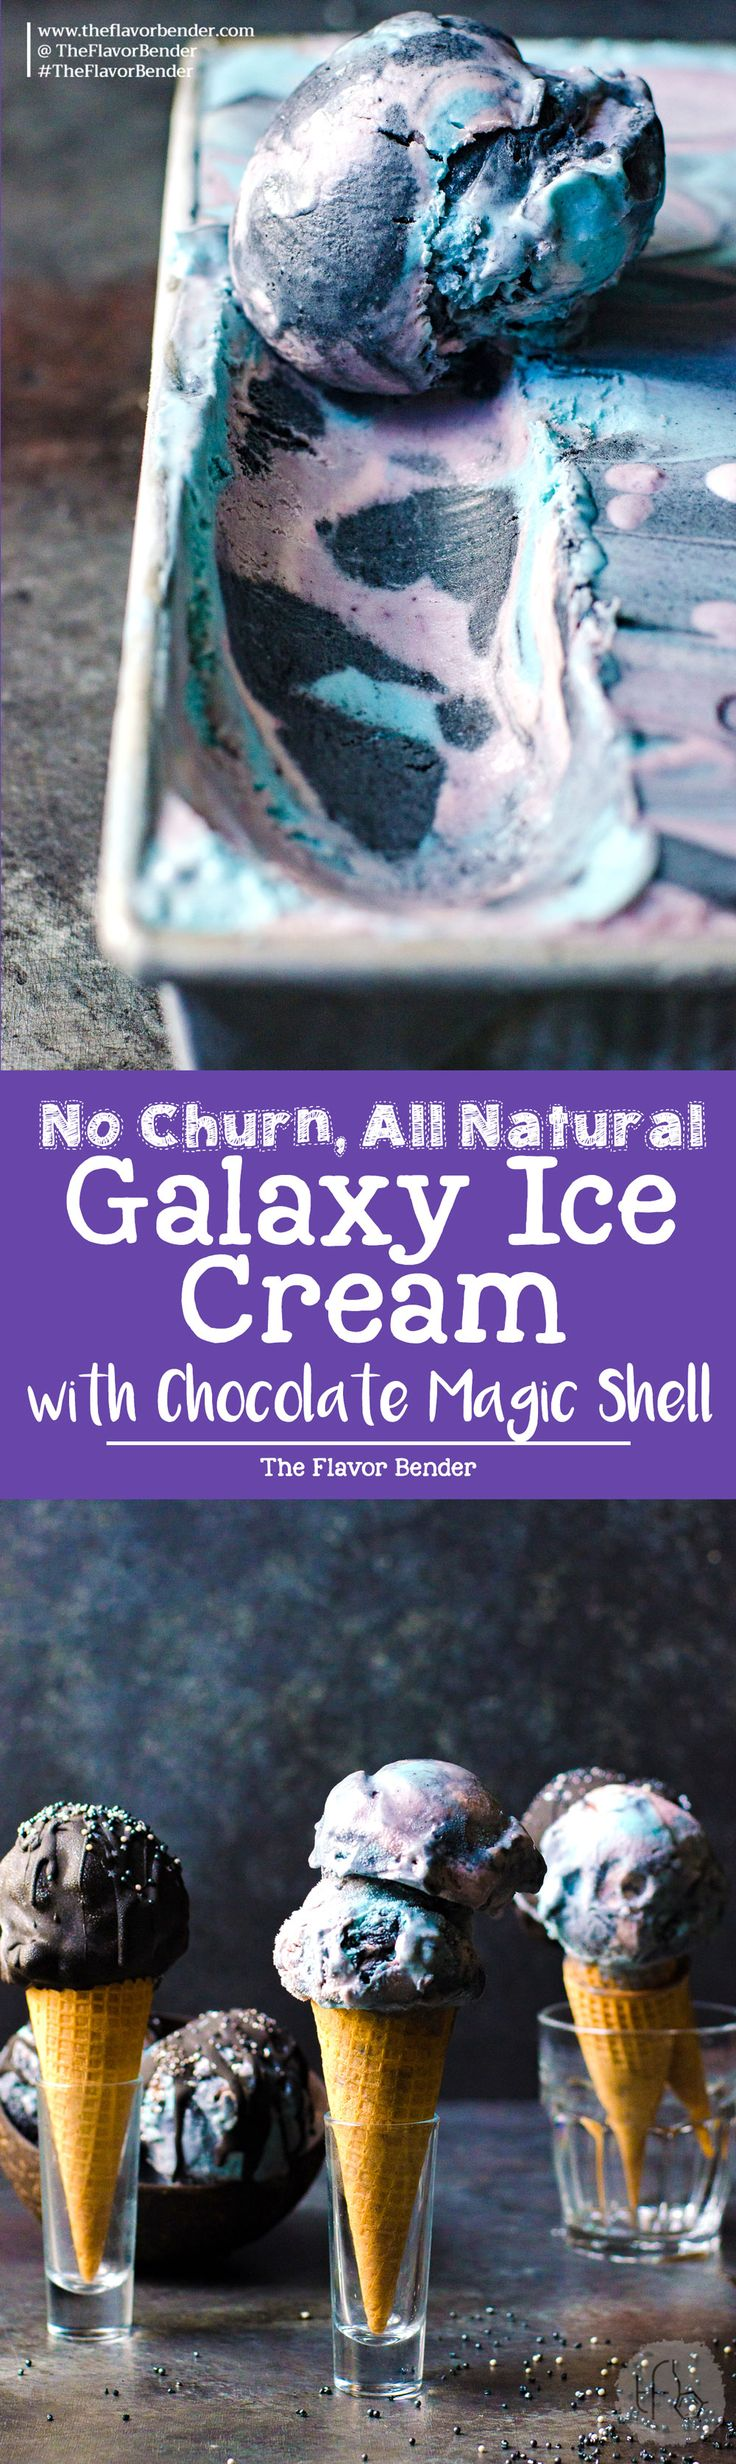 No churn Galaxy Ice cream - made with absolutely no food coloring and with fresh fruits, butterfly pea flower extract, and activated coconut charcoal. With pink, purple, blue and black swirls of mixed berry lemon ice cream and galaxy chocolate magic shell sauce and space funfetti - it's as delicious and magical as it looks!  via @theflavorbender